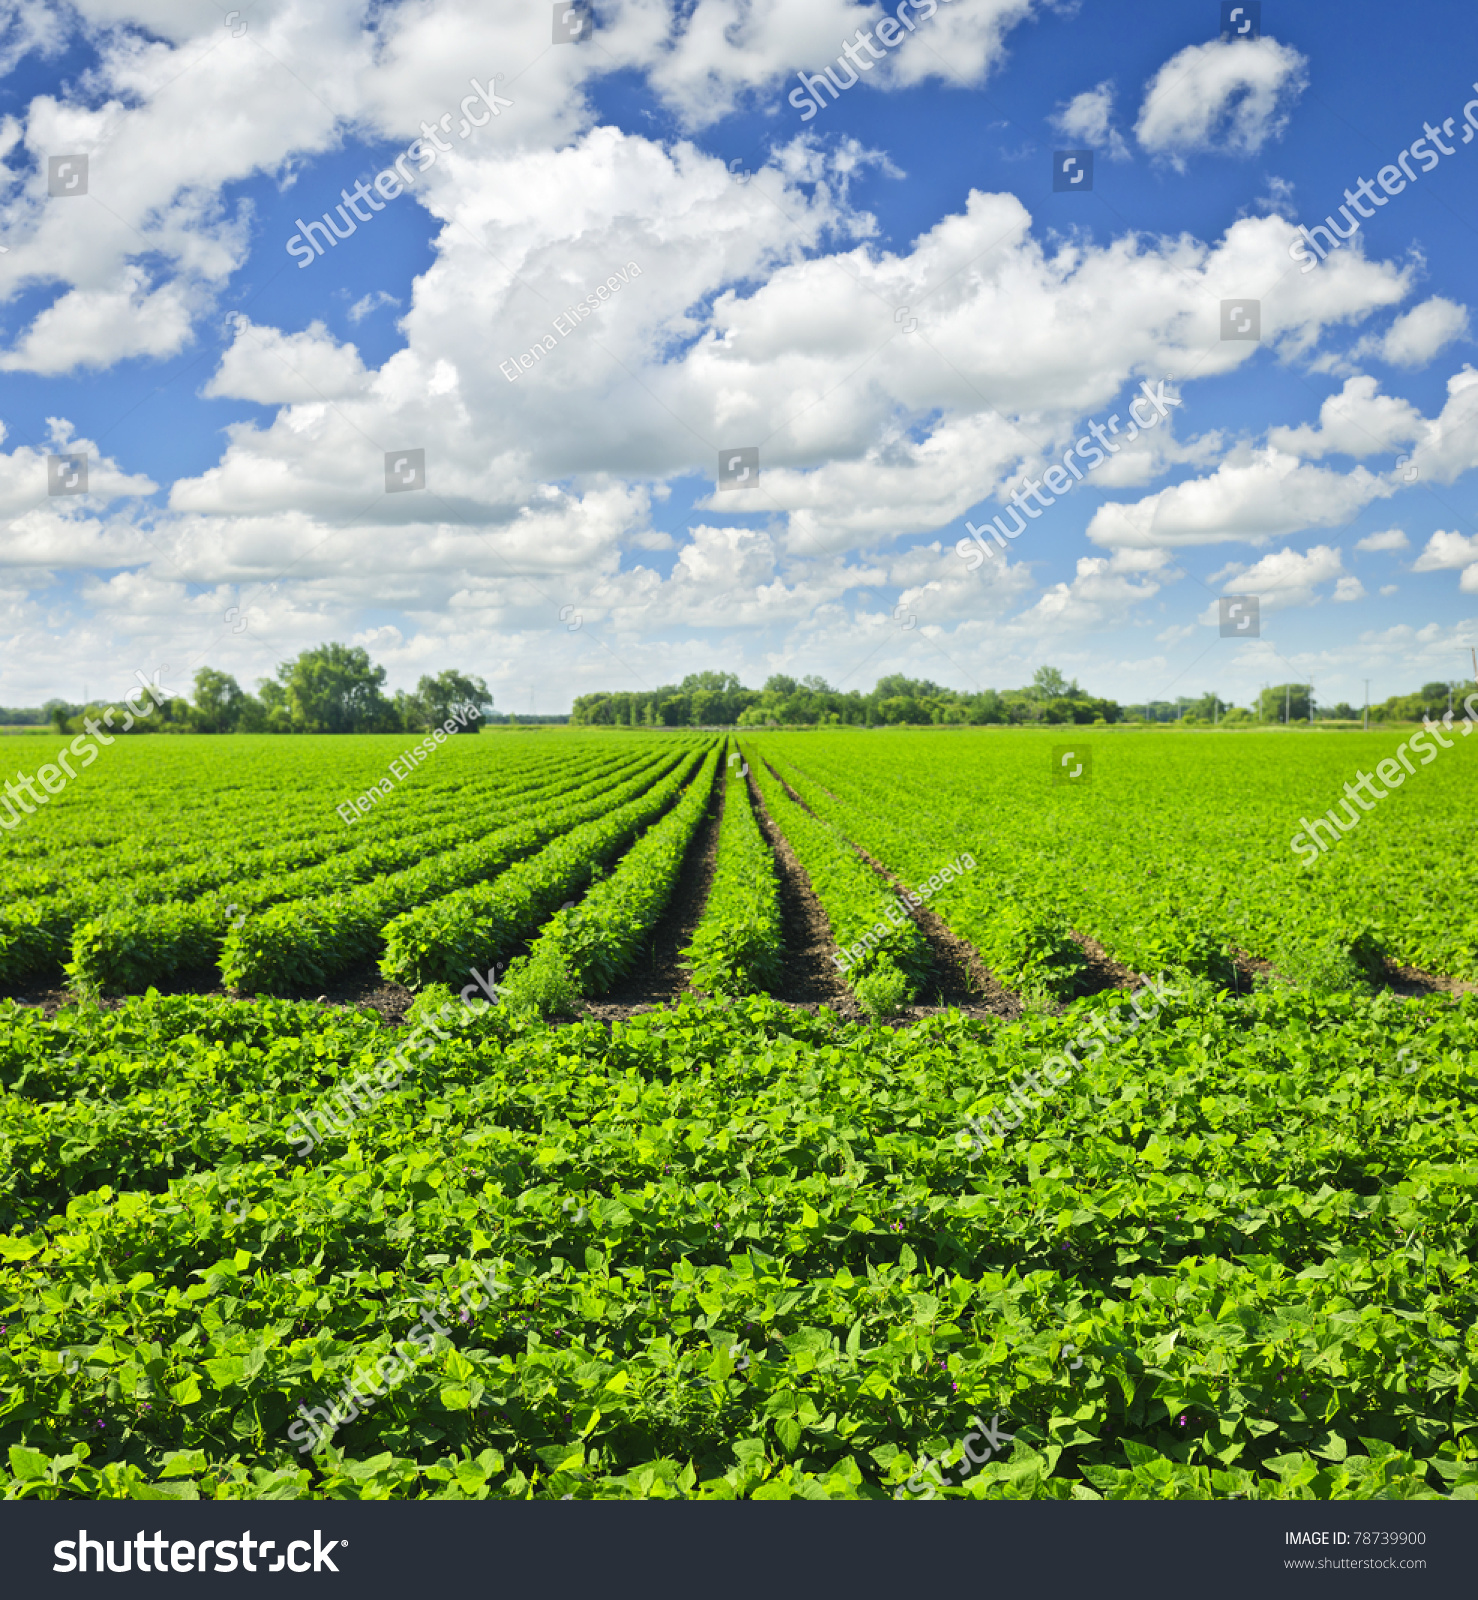 Rows Soy Plants Cultivated Farmers Field Stock Photo ...